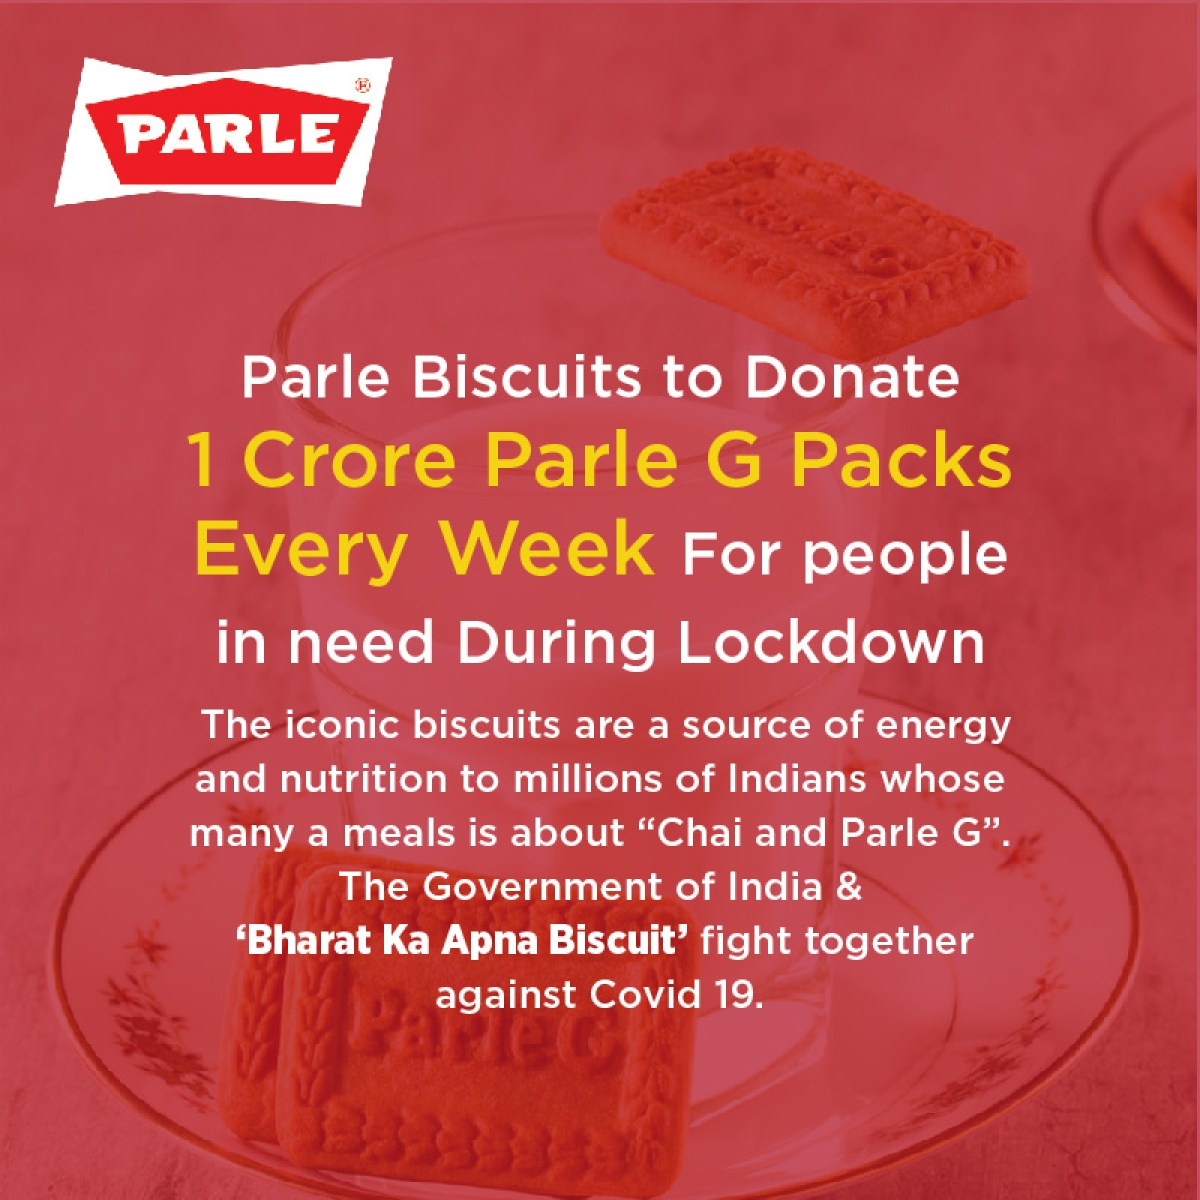 Parle Biscuits to donate one crore Parle G Packs every week